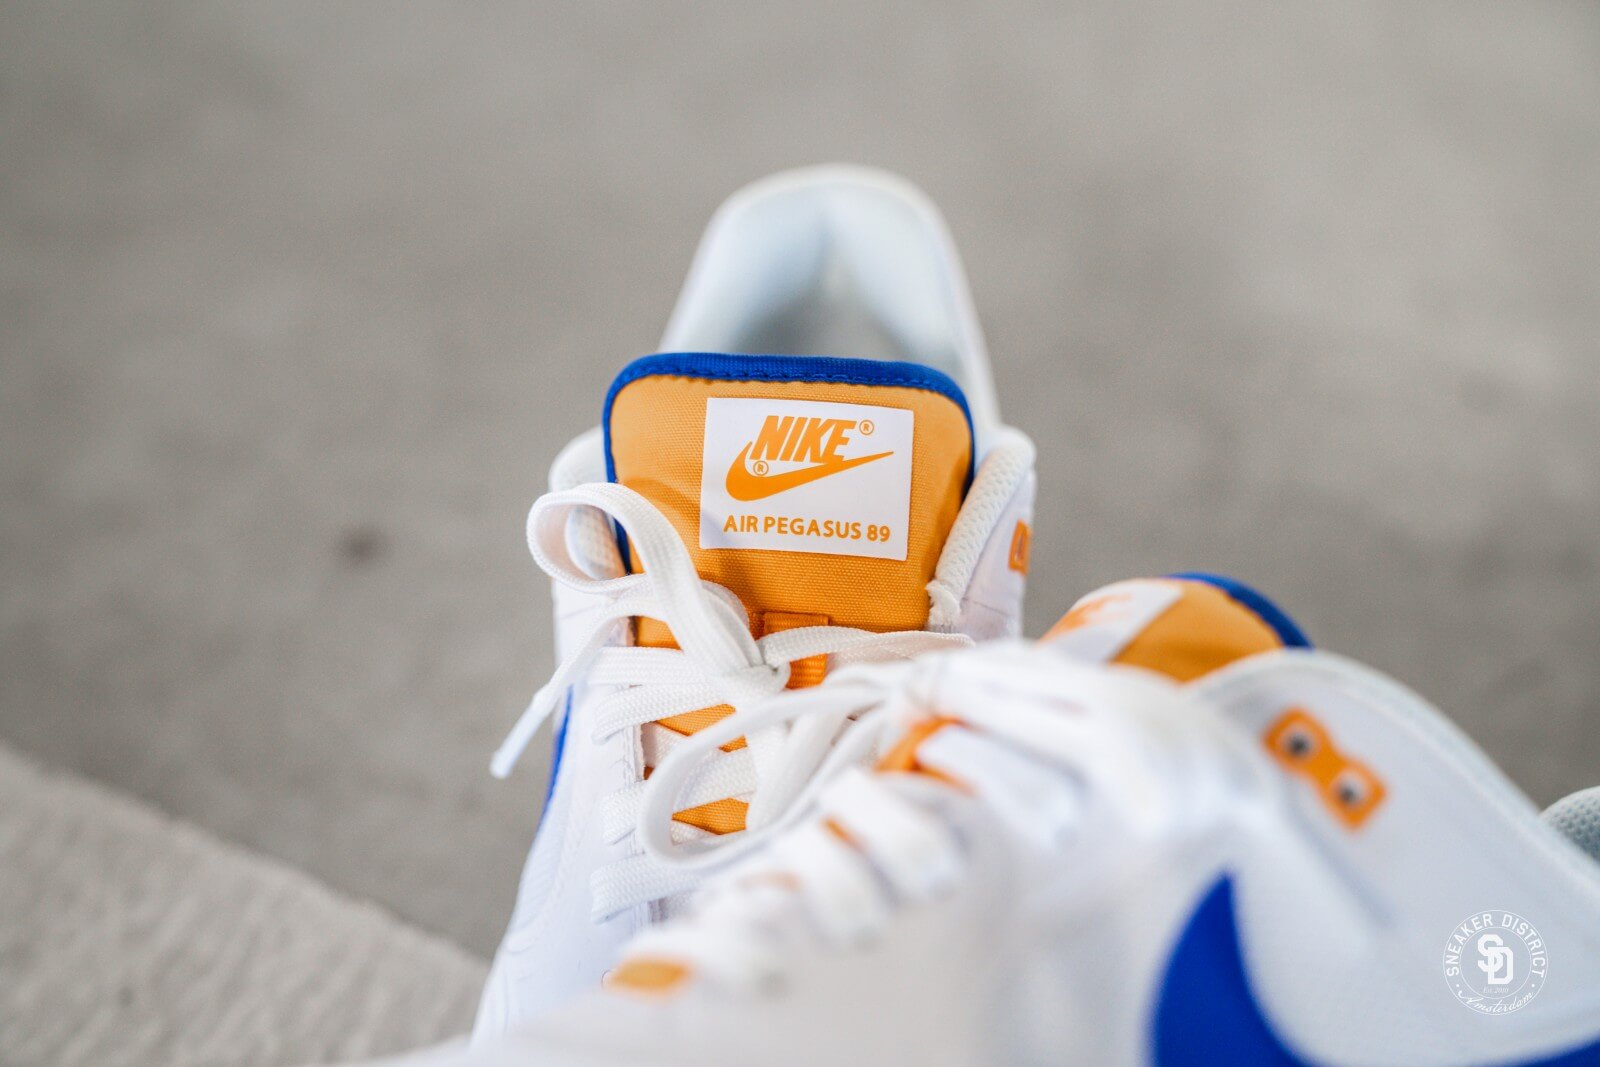 Nike Air Pegasus '89 White/Racer Blue-Orange Peel